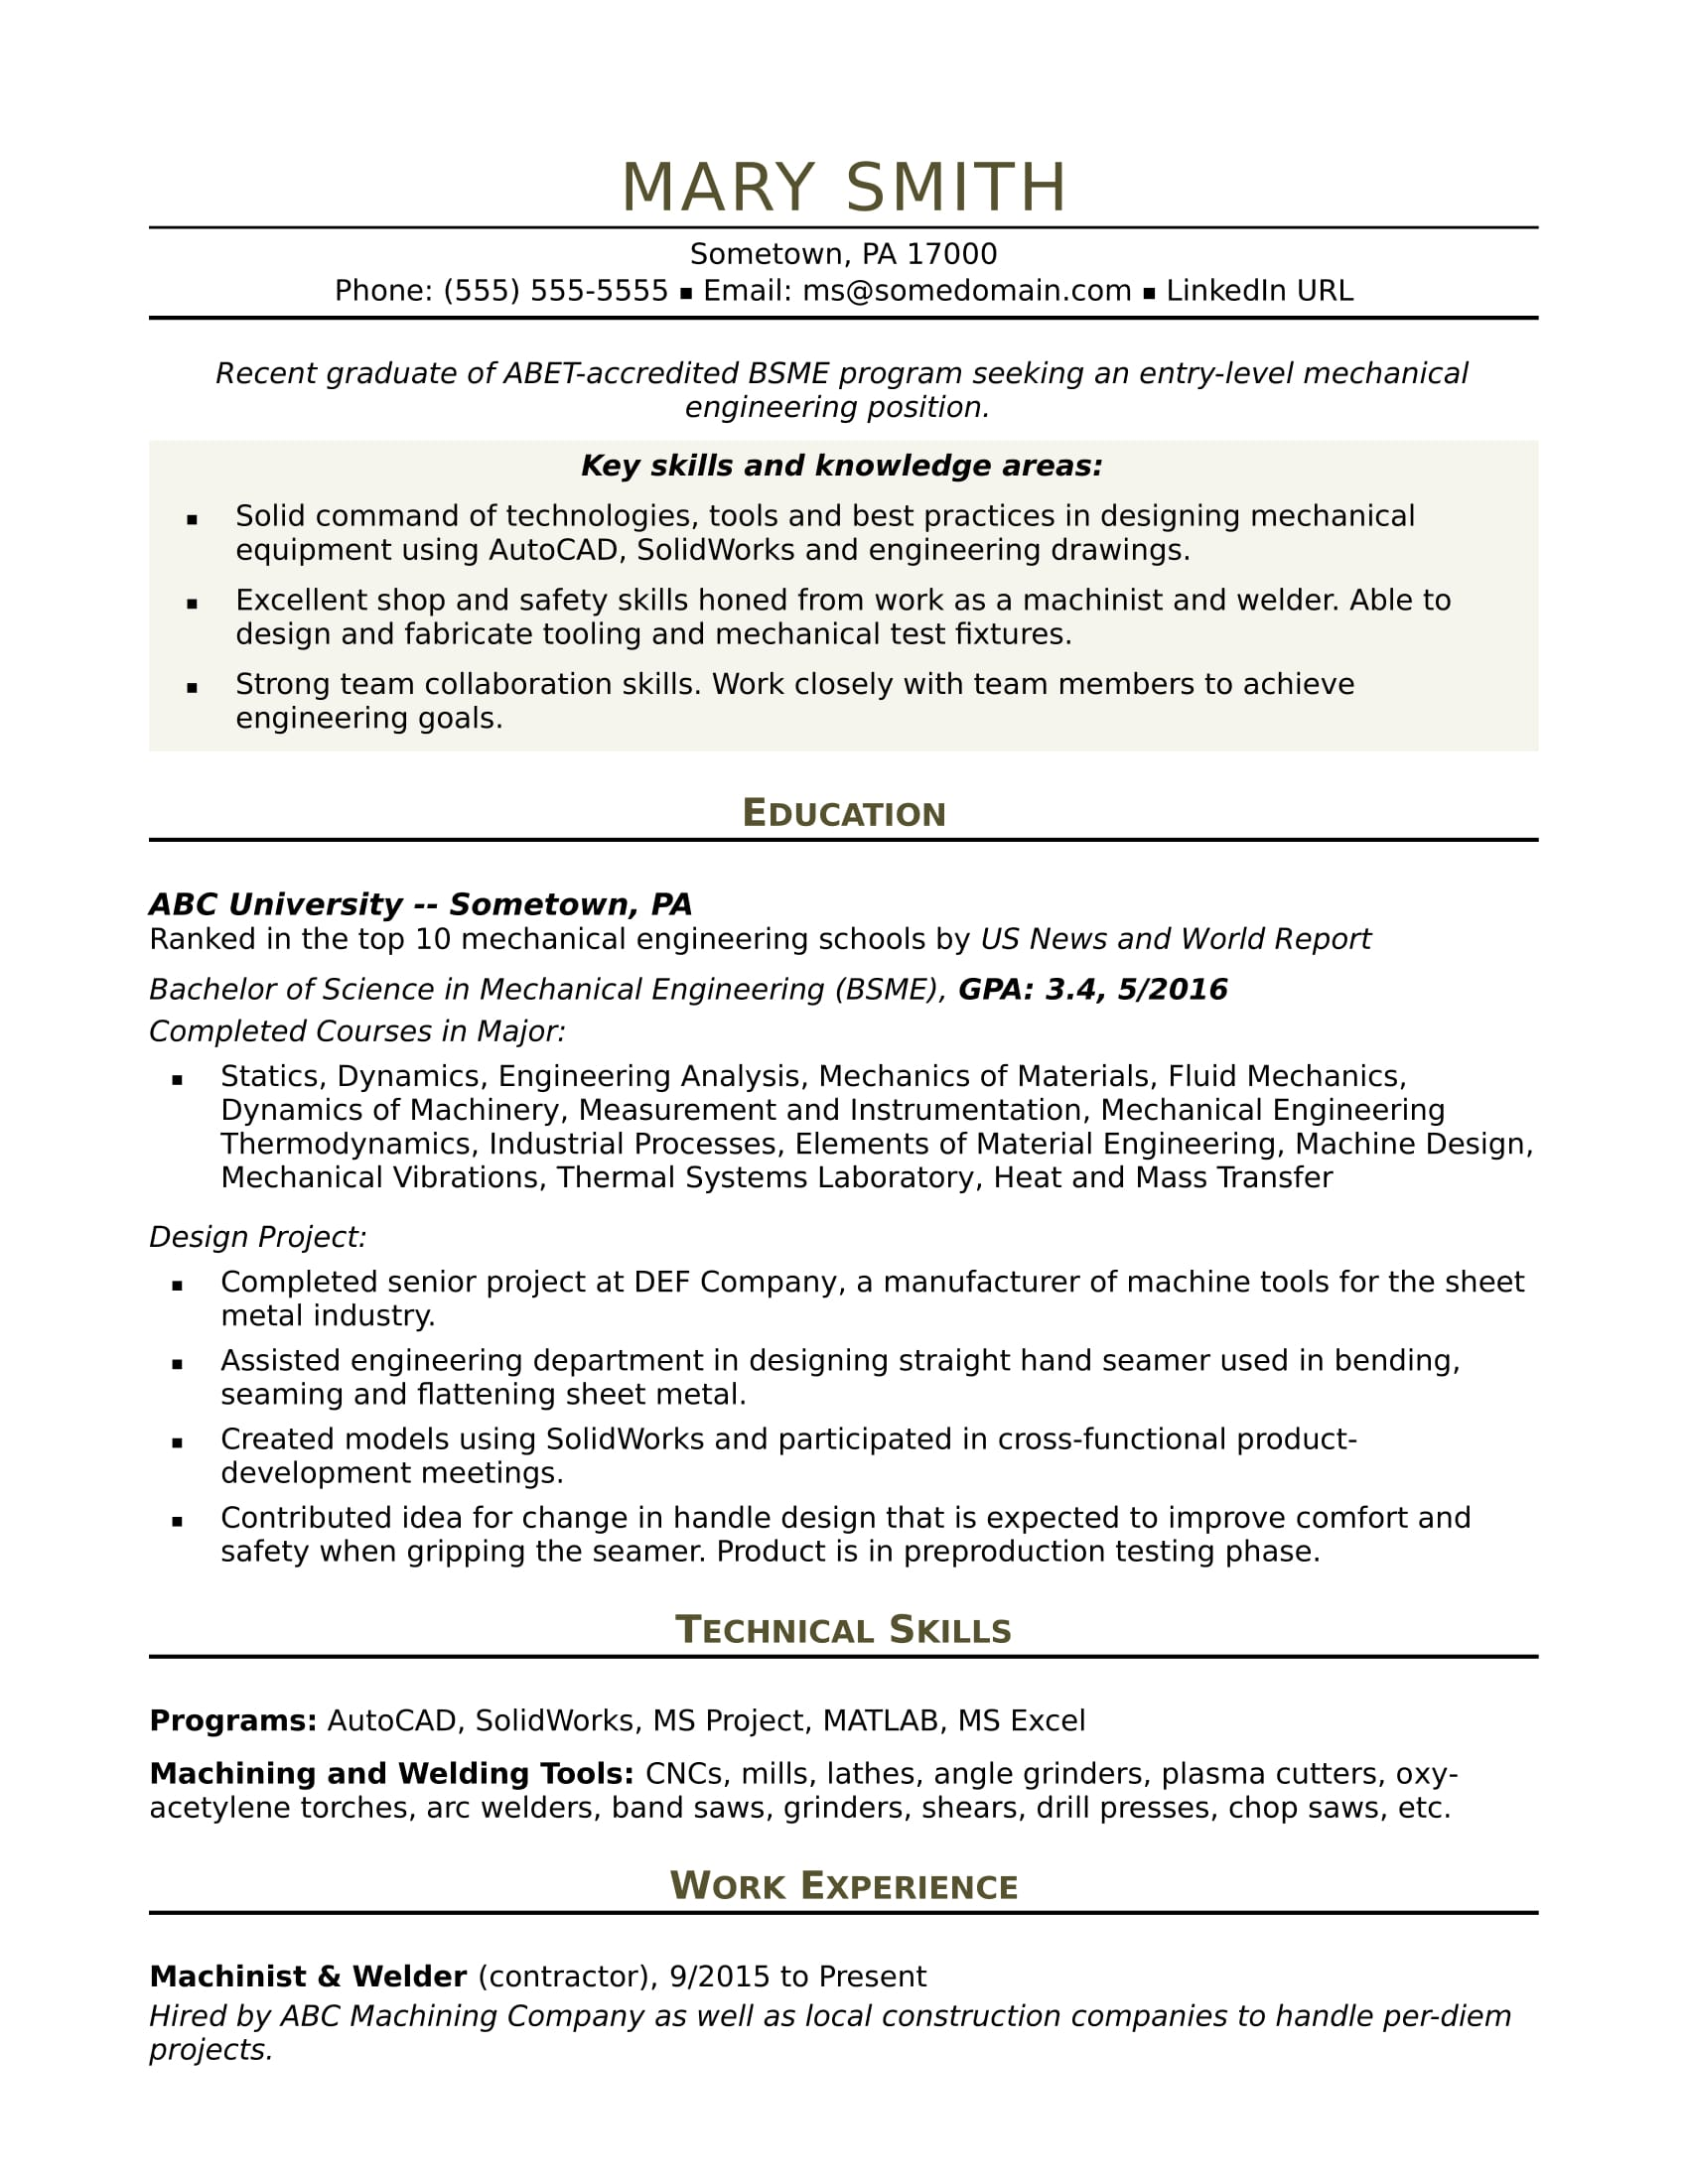 resume Key Skills Resume sample resume for an entry level mechanical engineer monster com engineer